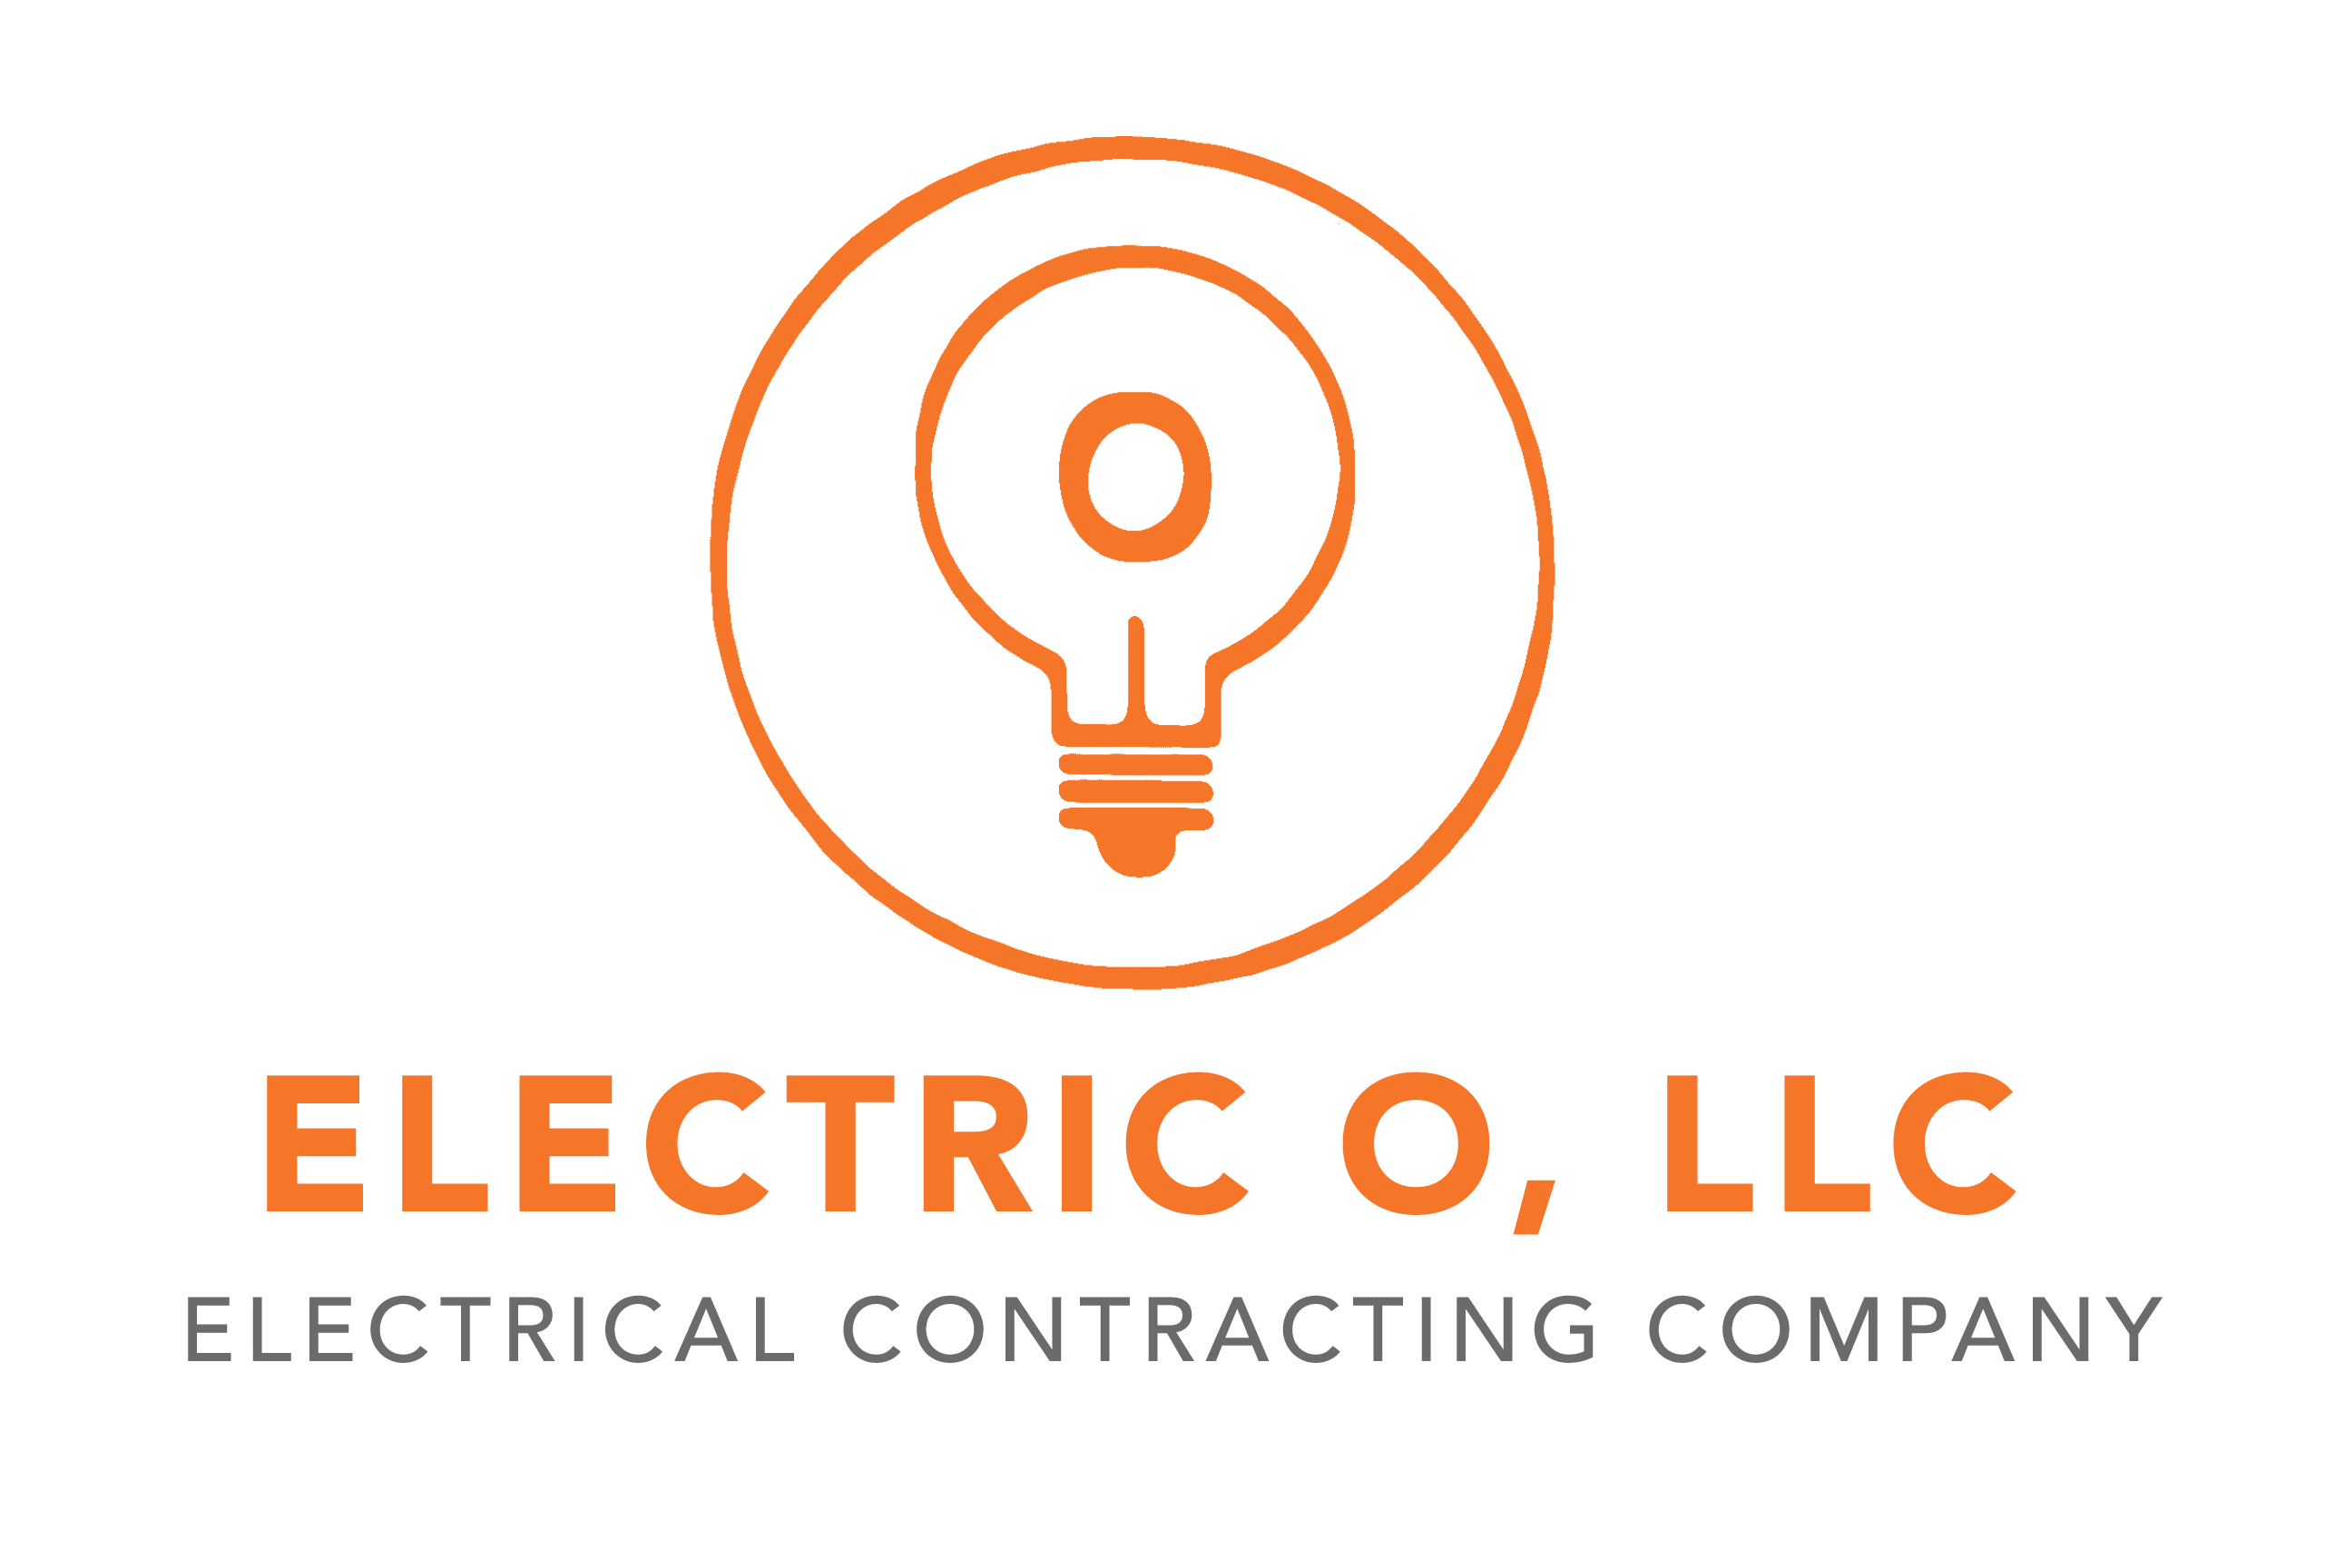 Electric O, LLC logo